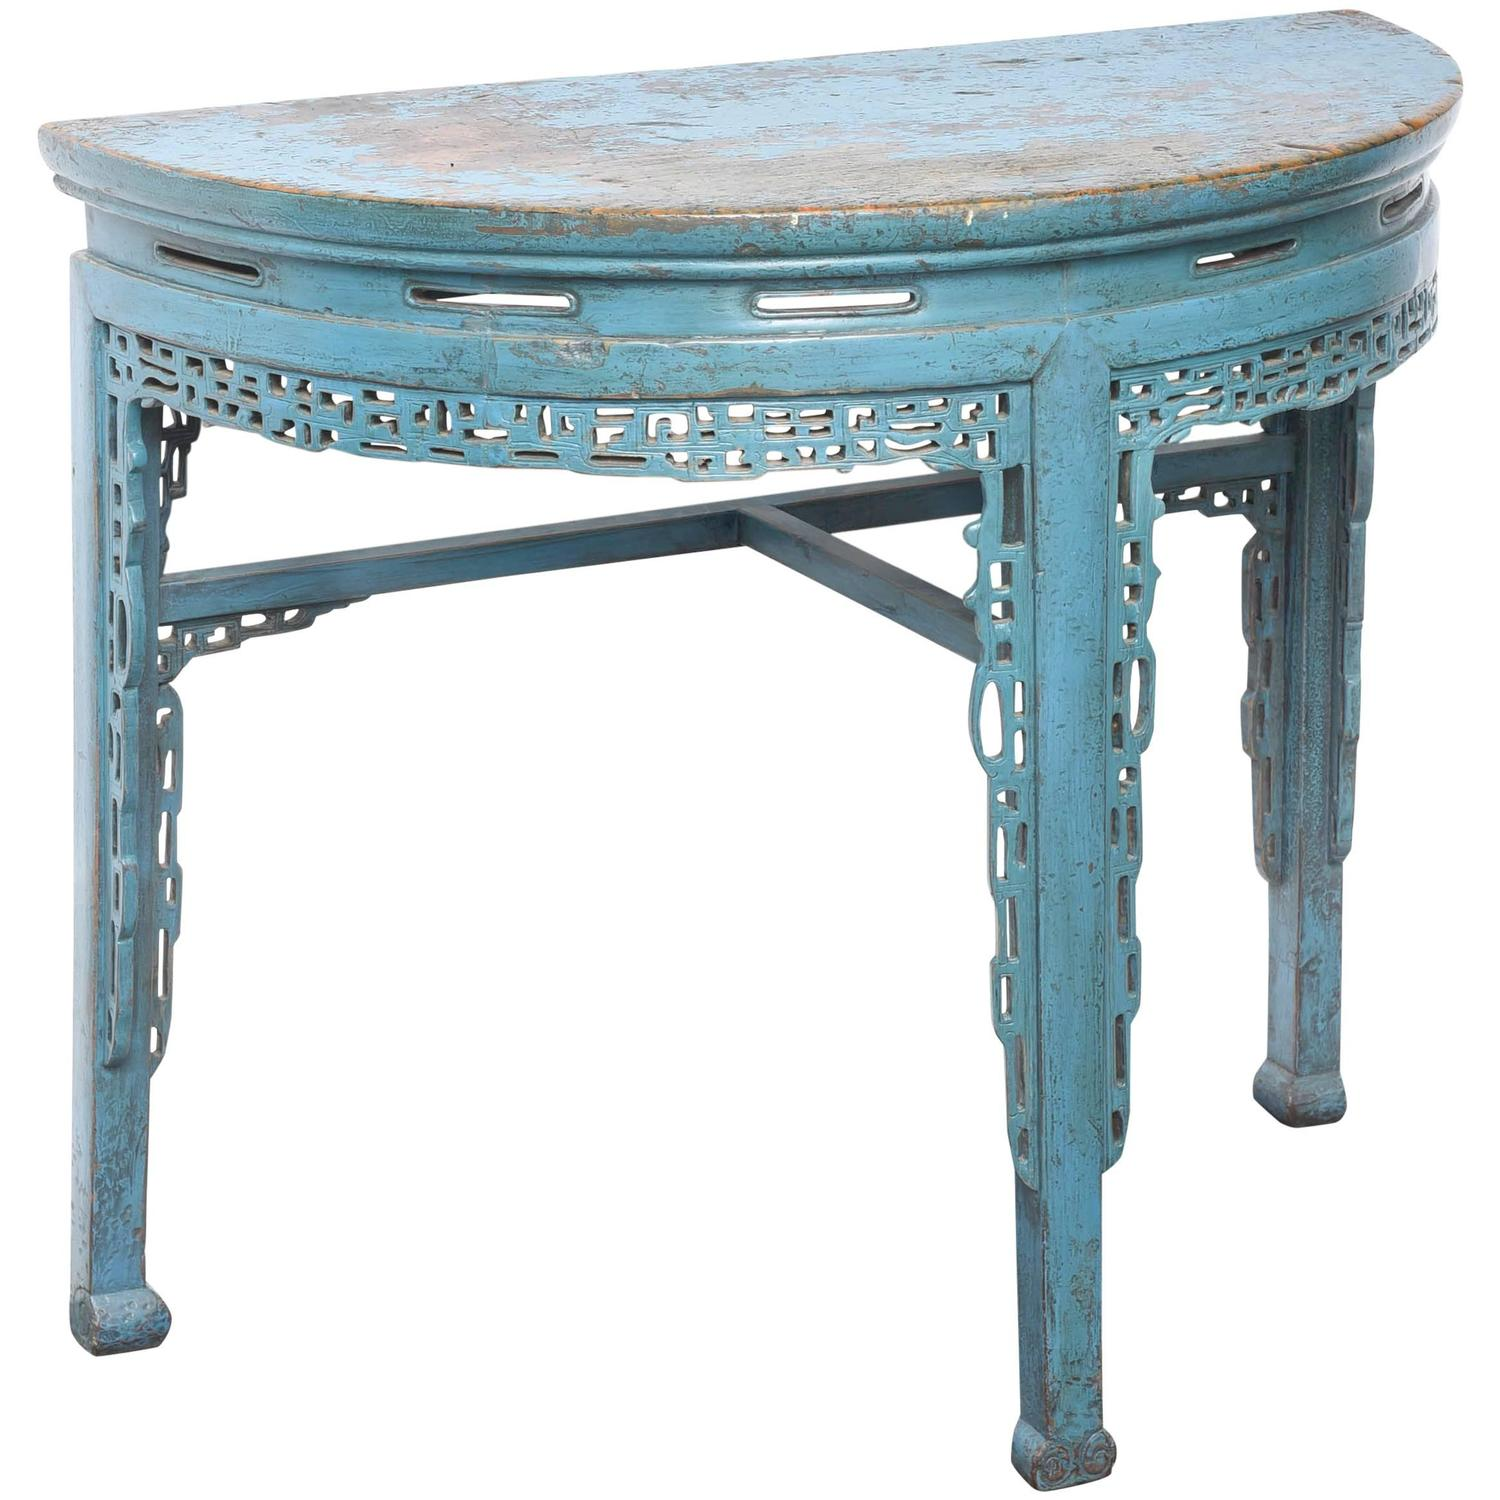 ready made table legs the outrageous beautiful teal round end century chinese hand painted half console rustic coffee and tables ikea standing desk hack off white side fancy floor